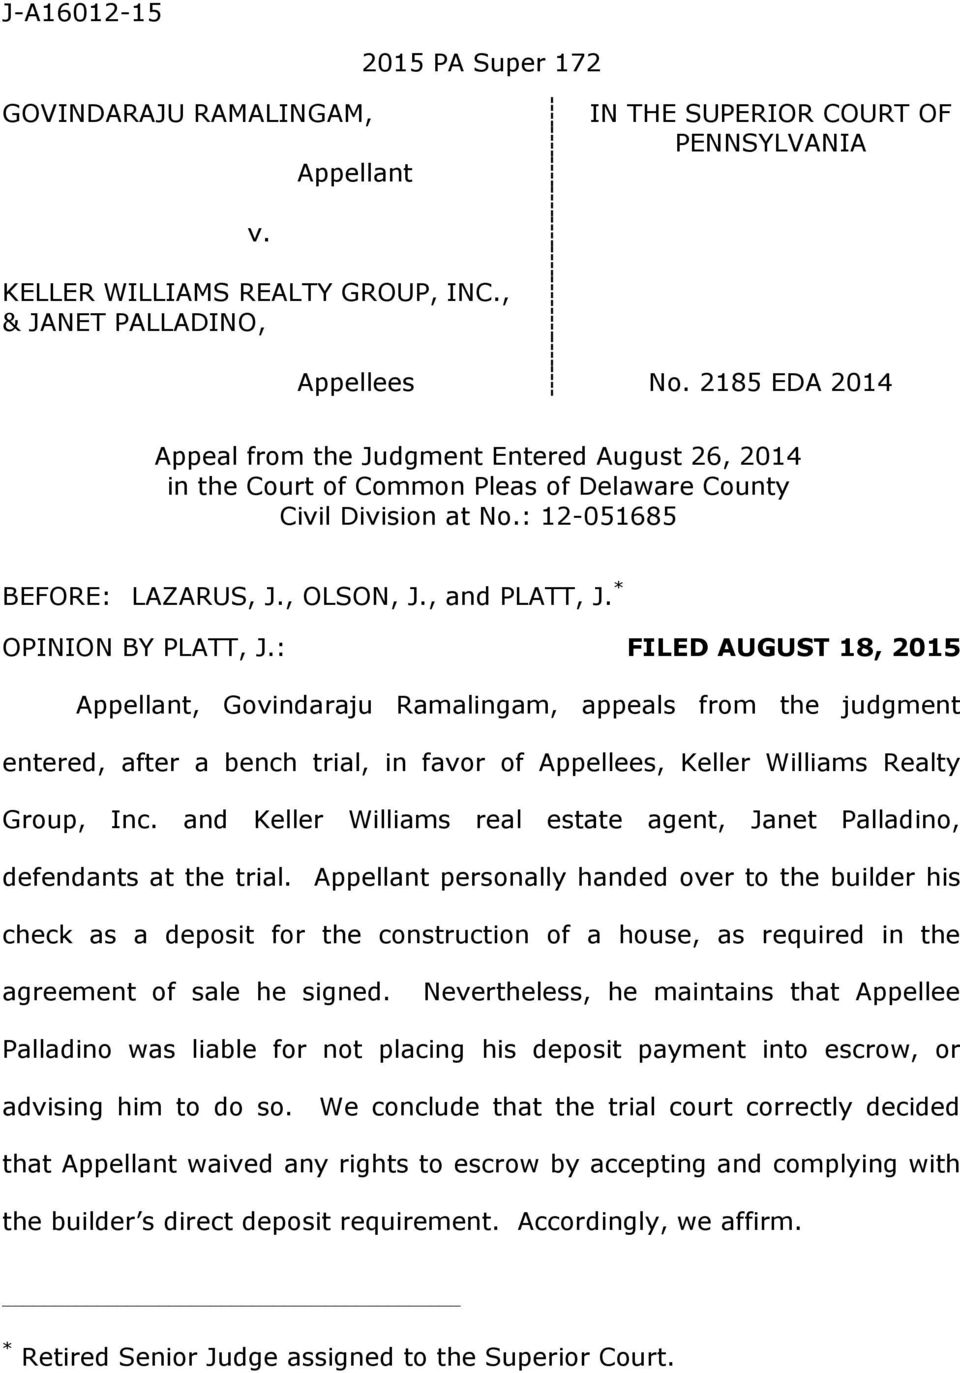 * OPINION BY PLATT, J.: FILED AUGUST 18, 2015 Appellant, Govindaraju Ramalingam, appeals from the judgment entered, after a bench trial, in favor of Appellees, Keller Williams Realty Group, Inc.